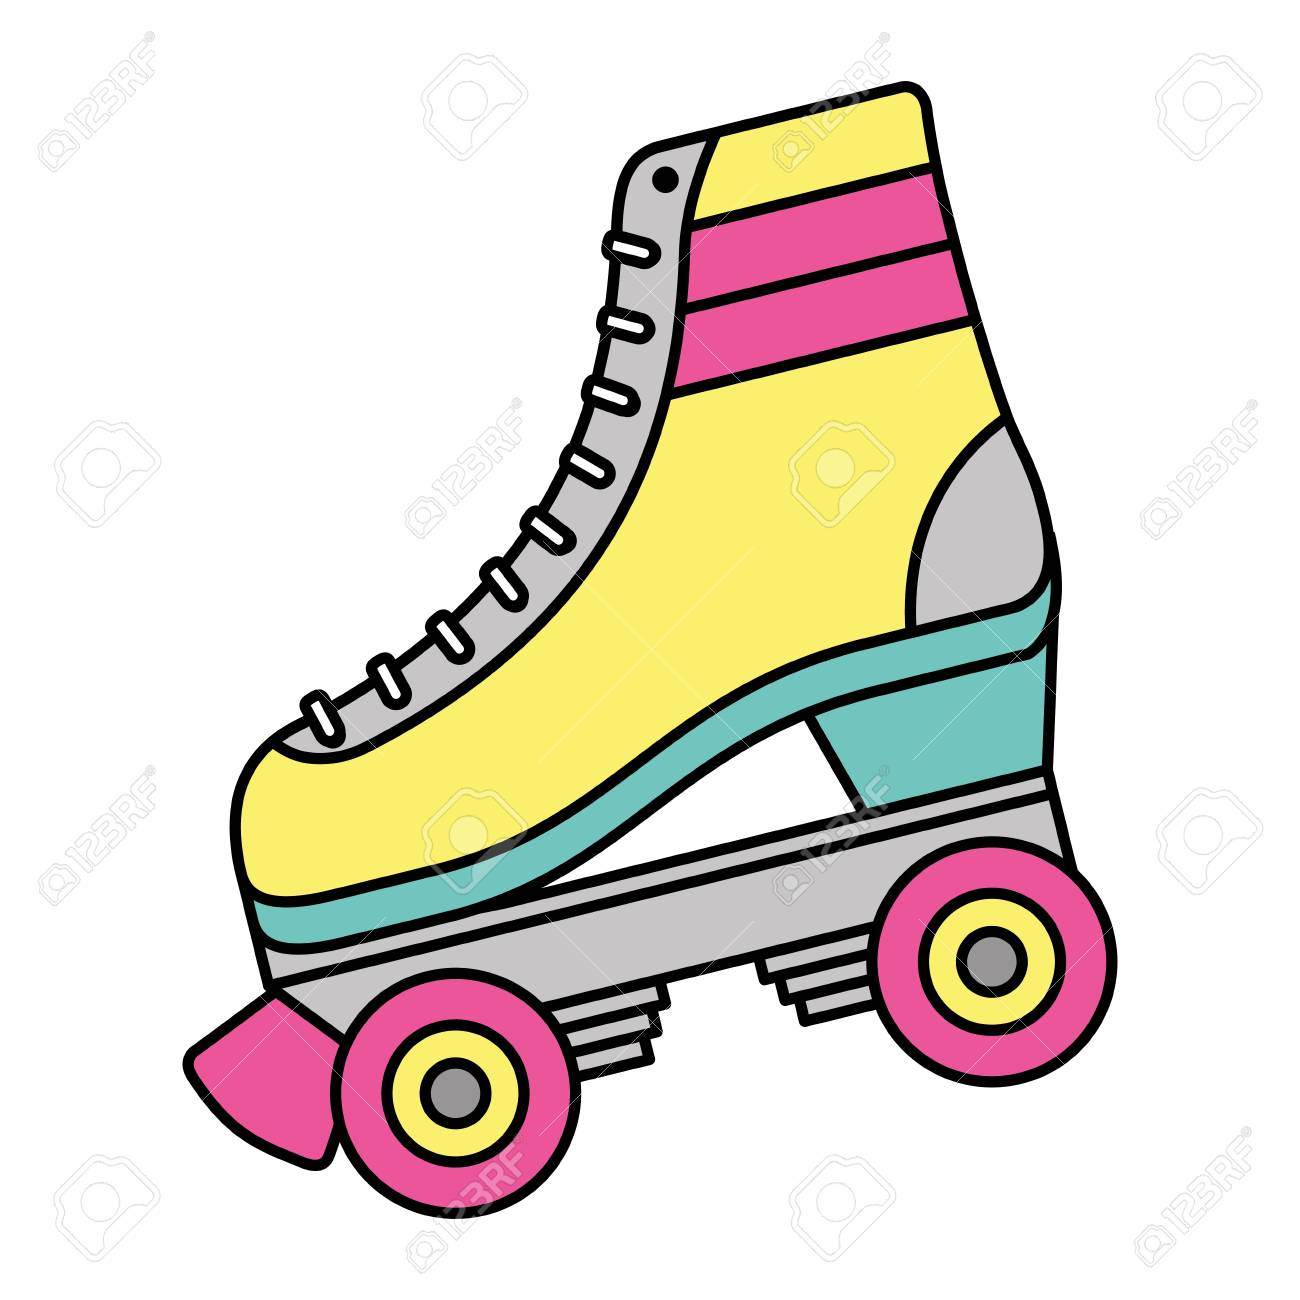 hight resolution of classic roller skate laced wheels retro fashion vector illustration stock vector 94420542